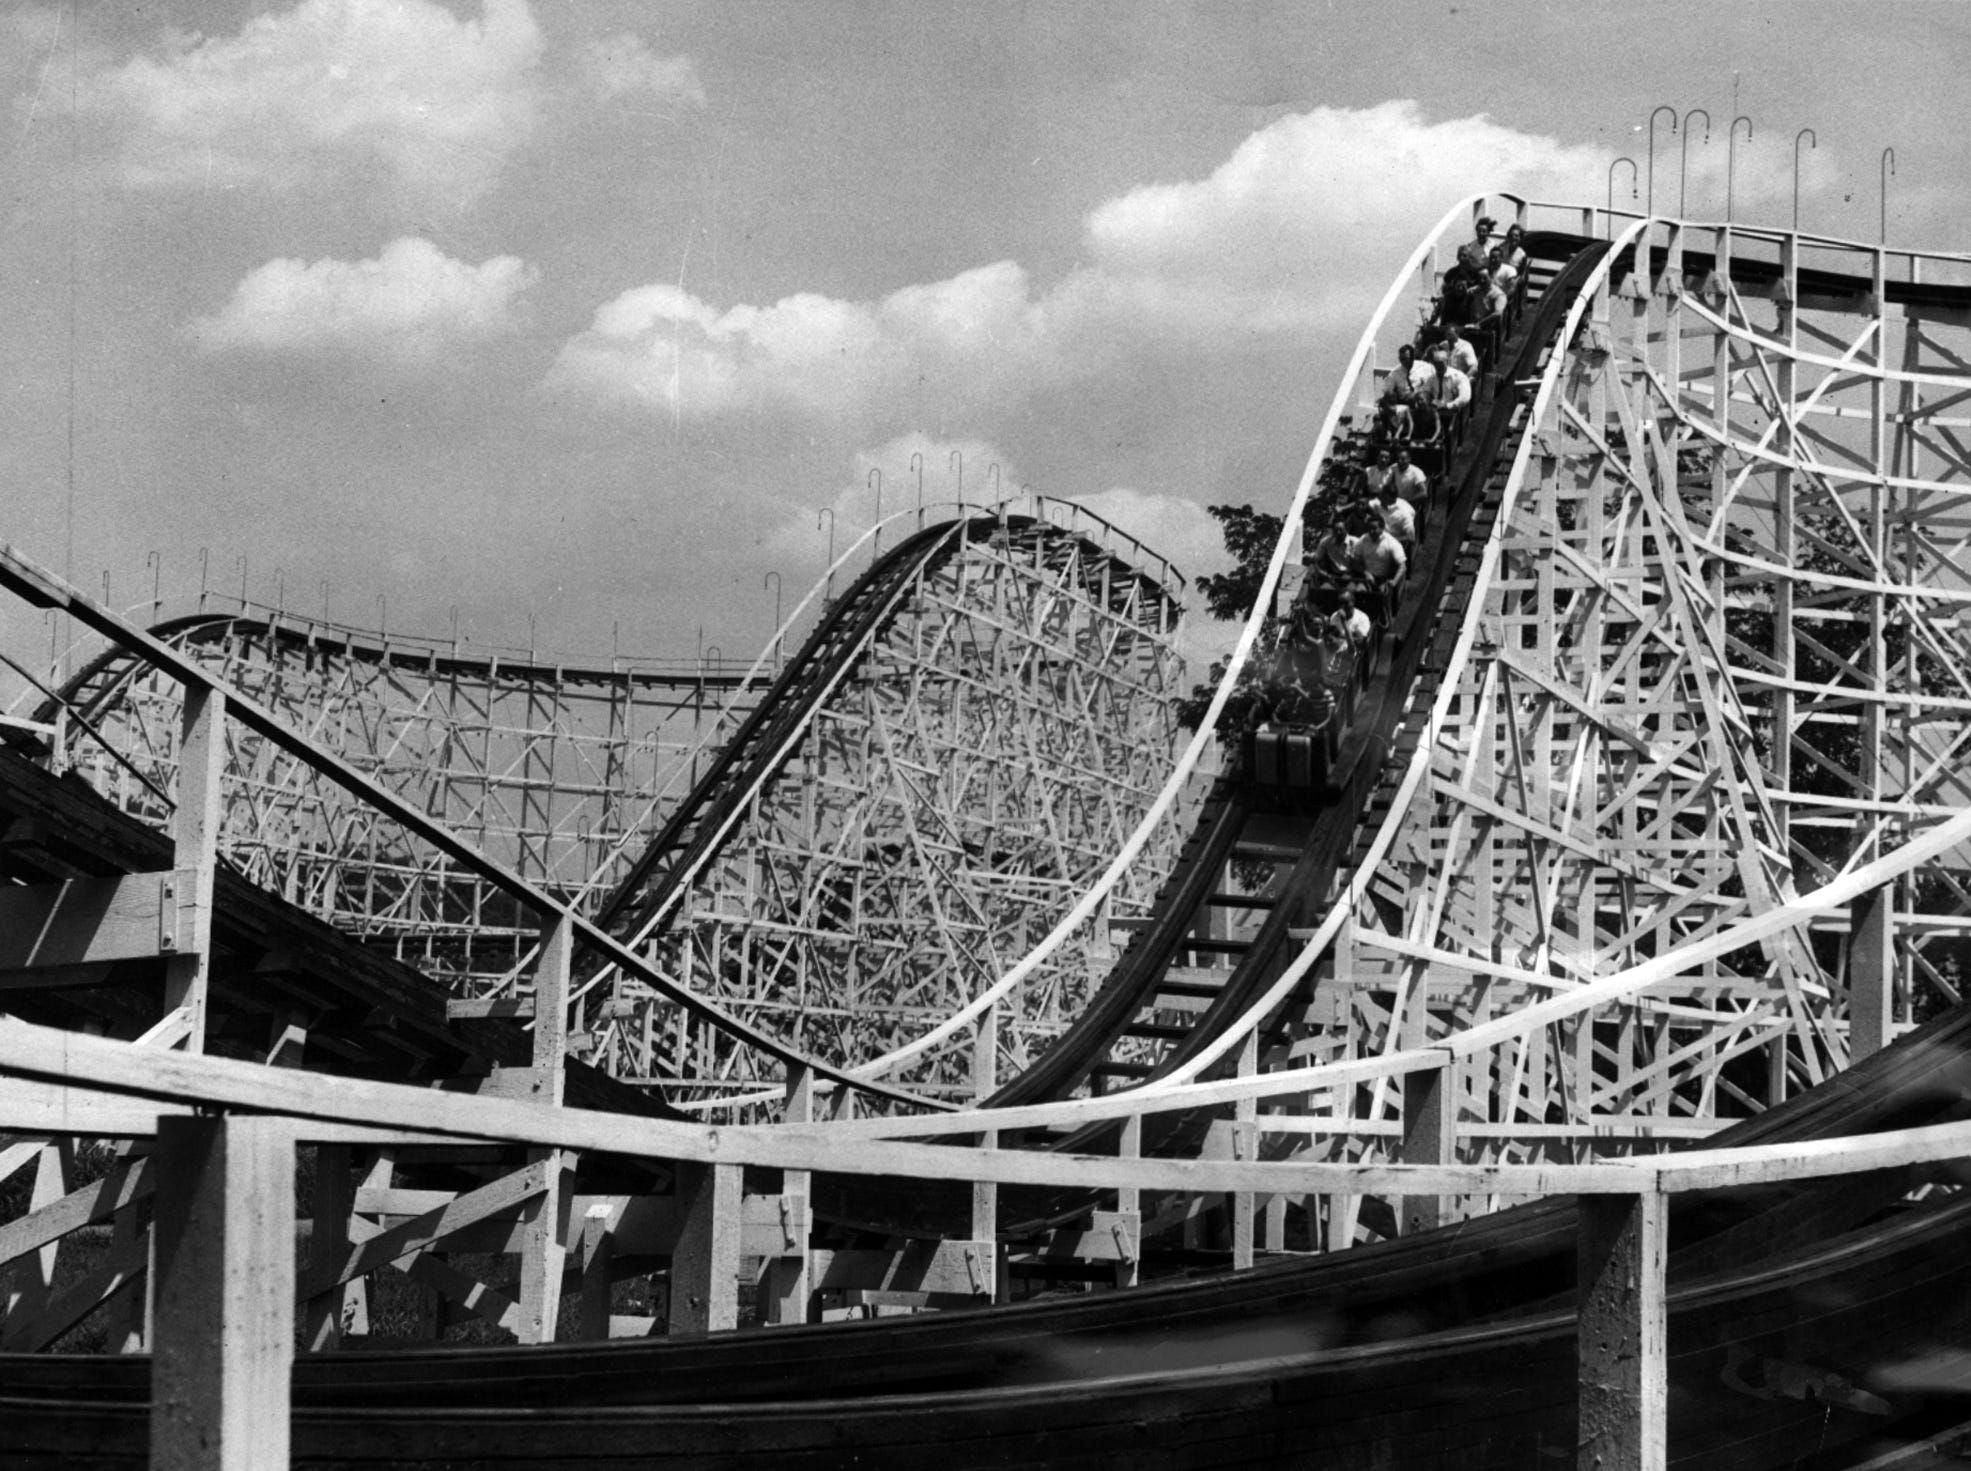 The Wildcat and Shooting Star were in operation at Coney Island.